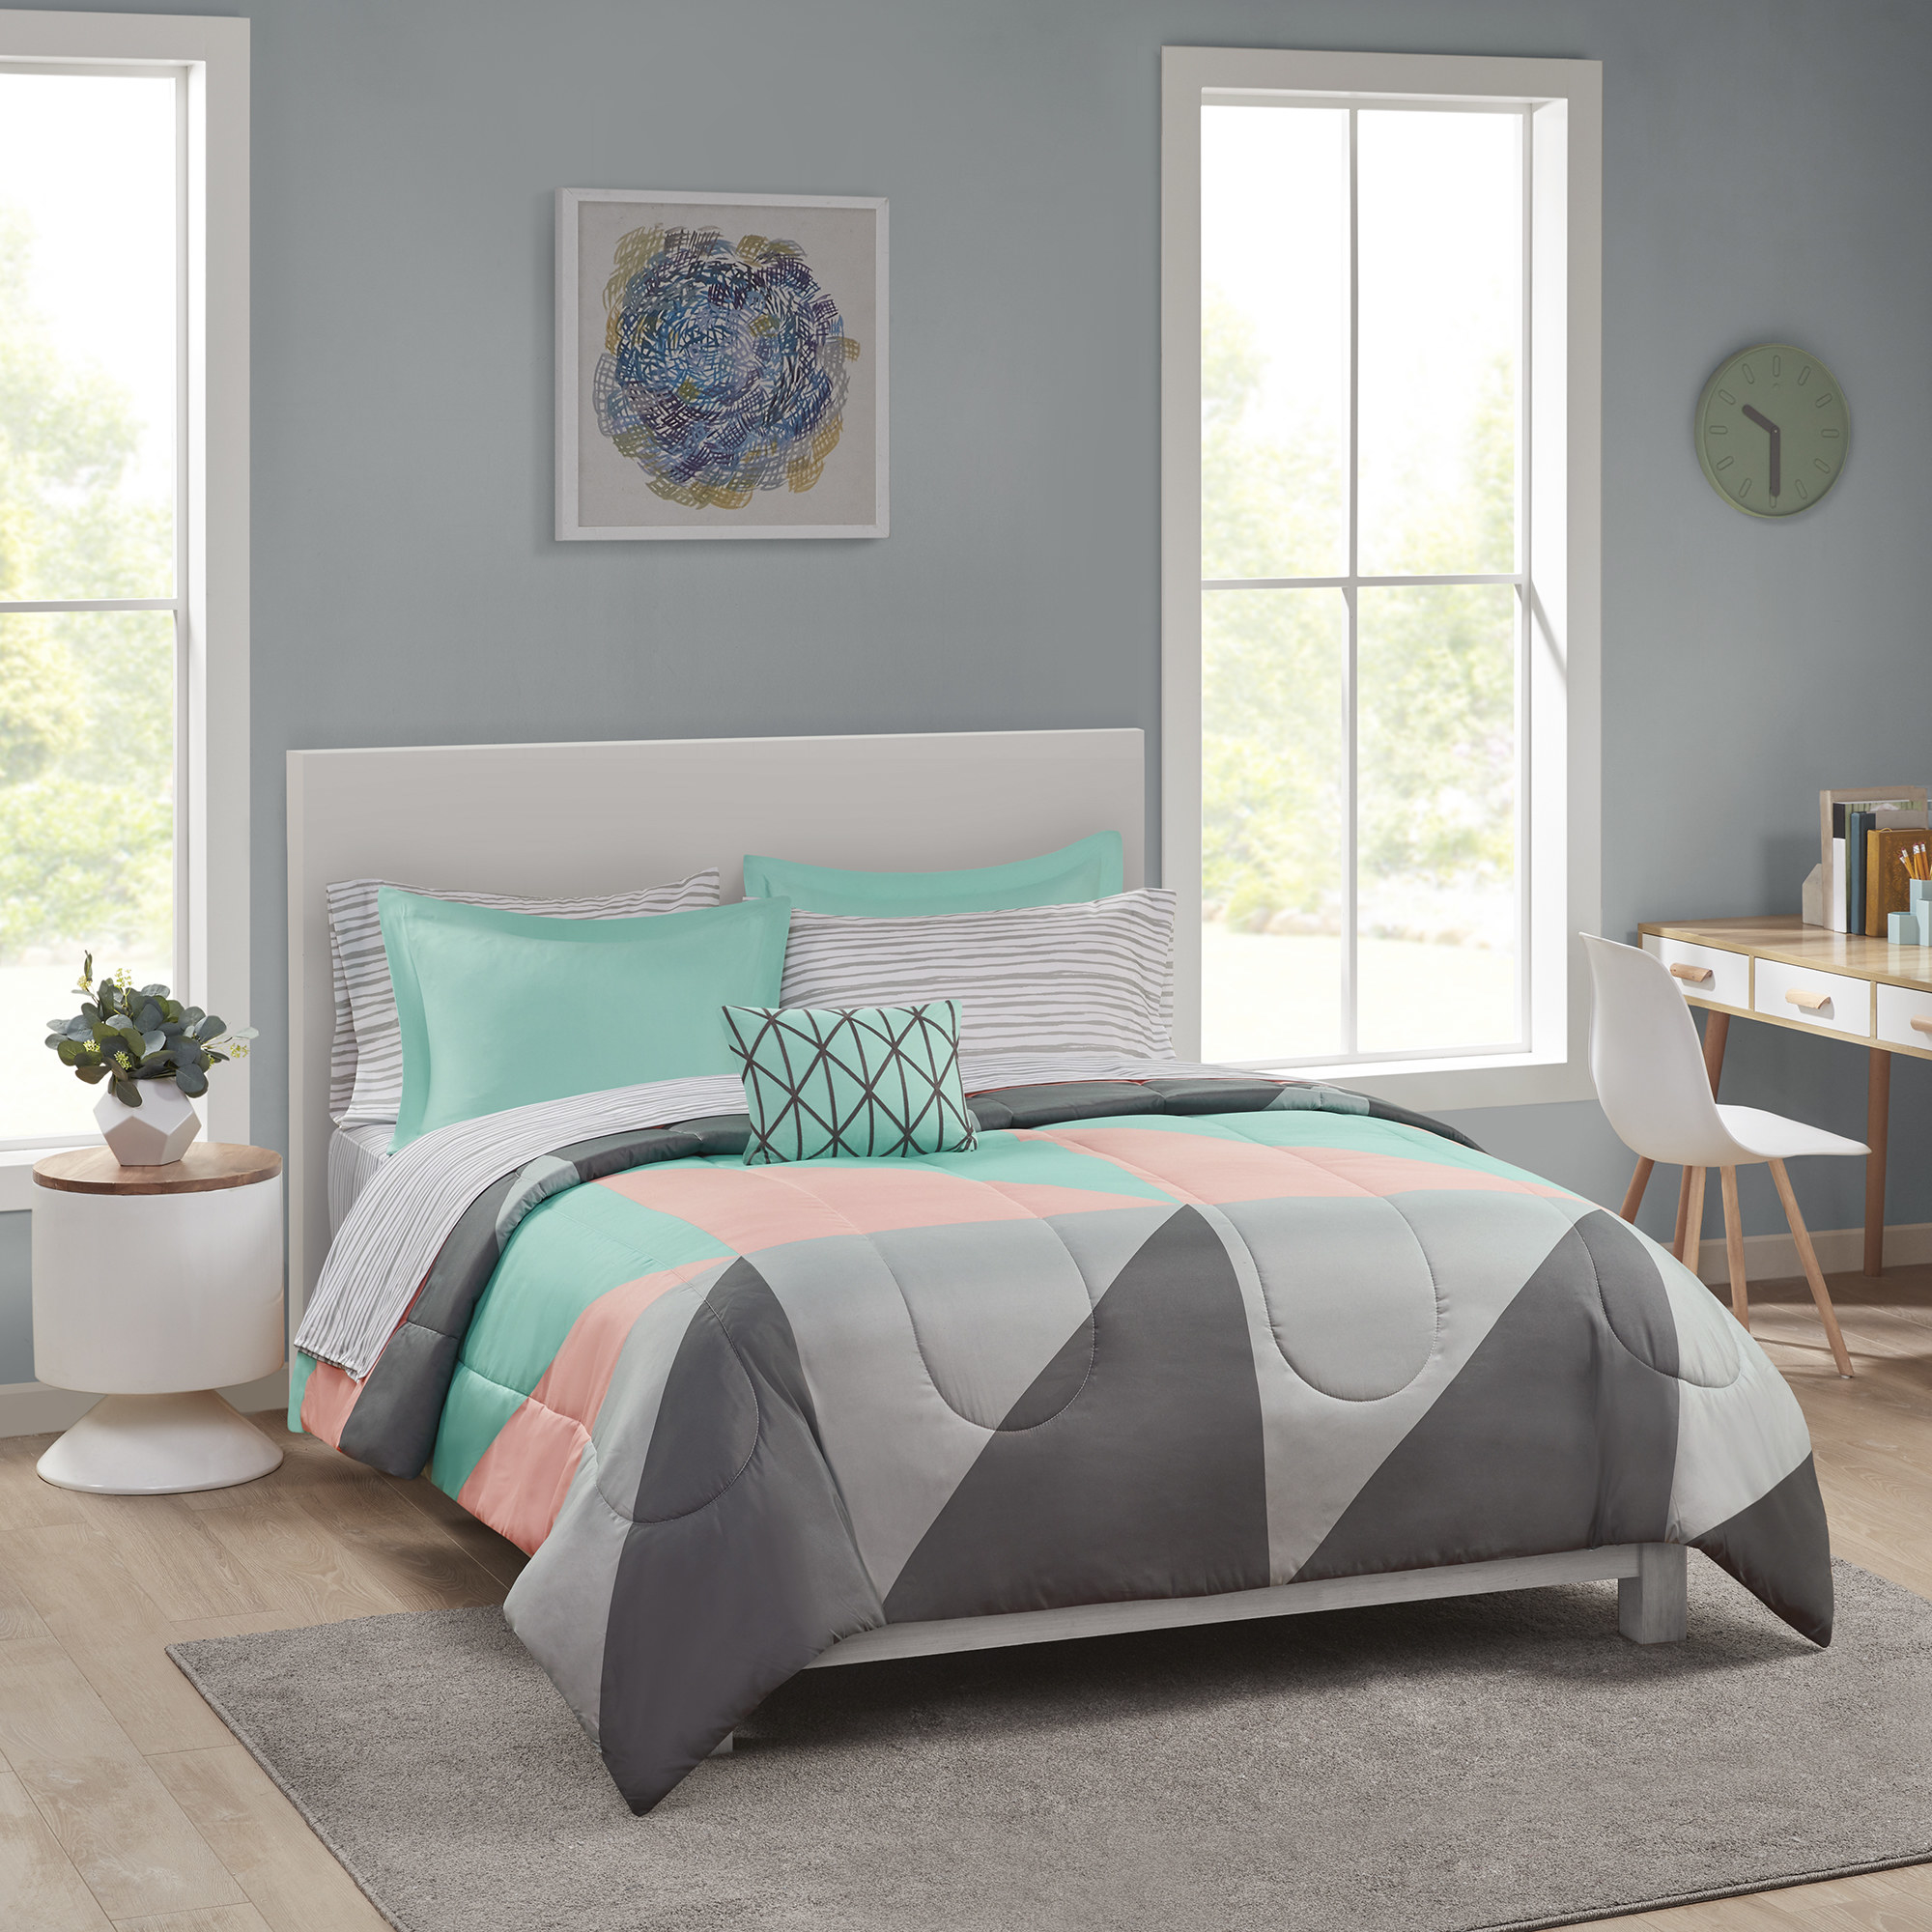 bed in bedroom with a gray and teal bed set